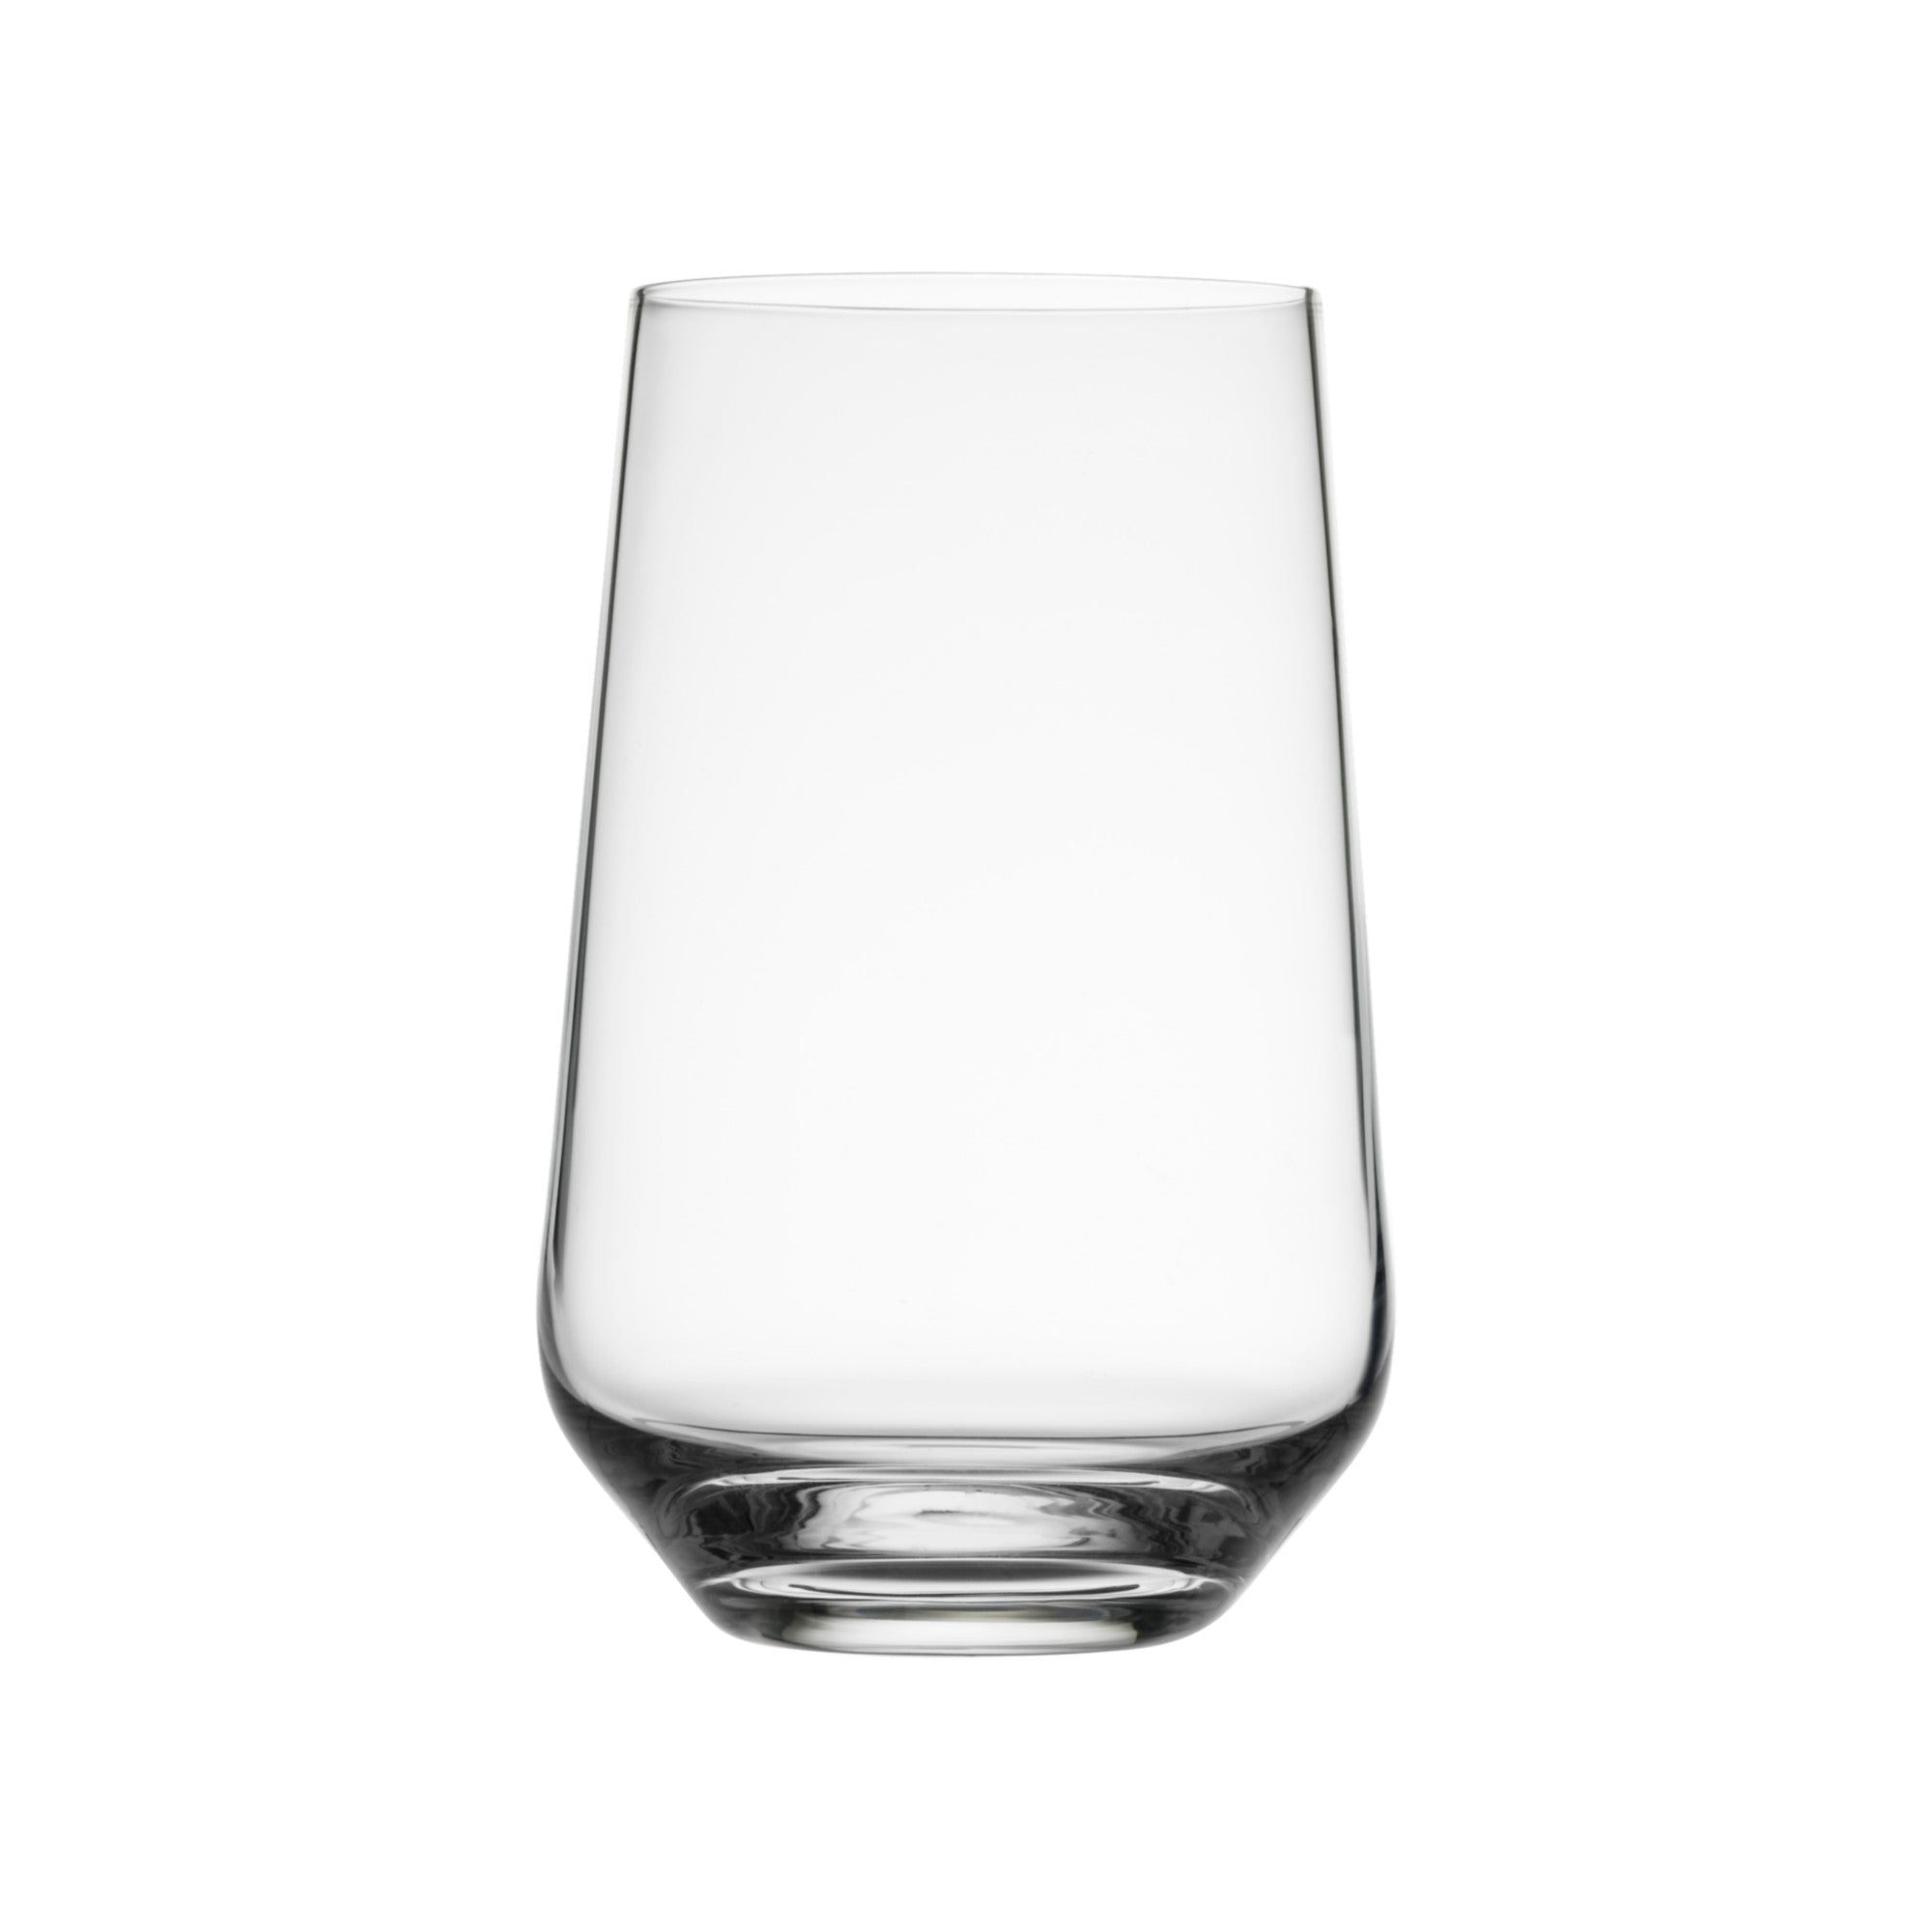 Essence Universal Glass, Set of 2